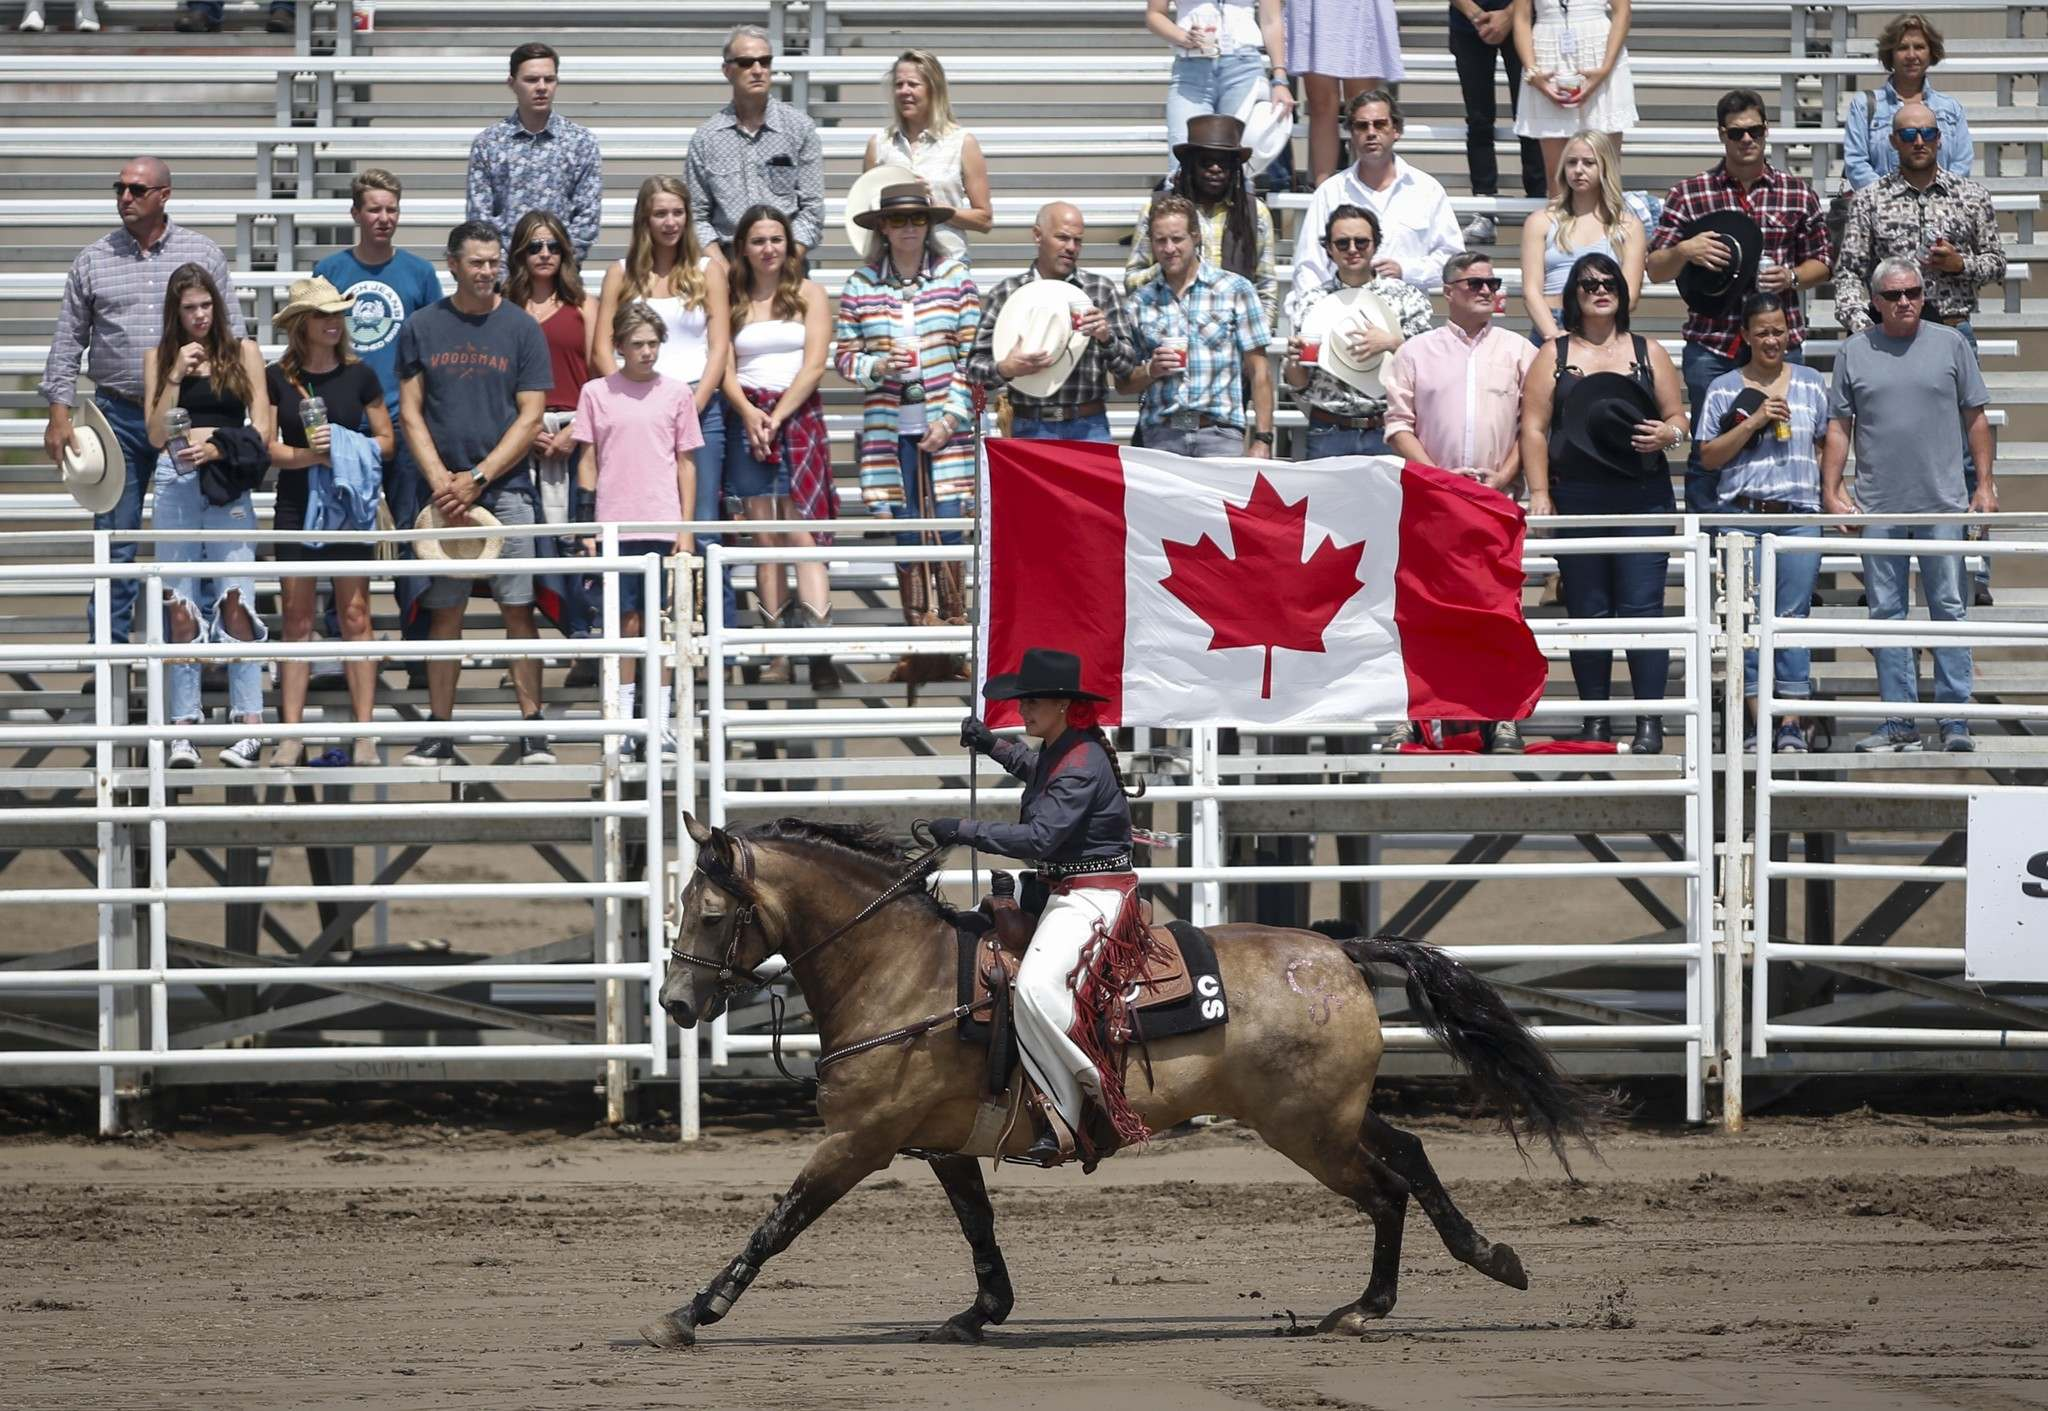 Jeff McIntosh / The Canadian Press</p><p>A rider carries the Canadian flag during the national anthem before the start of rodeo action at the Calgary Stampede.